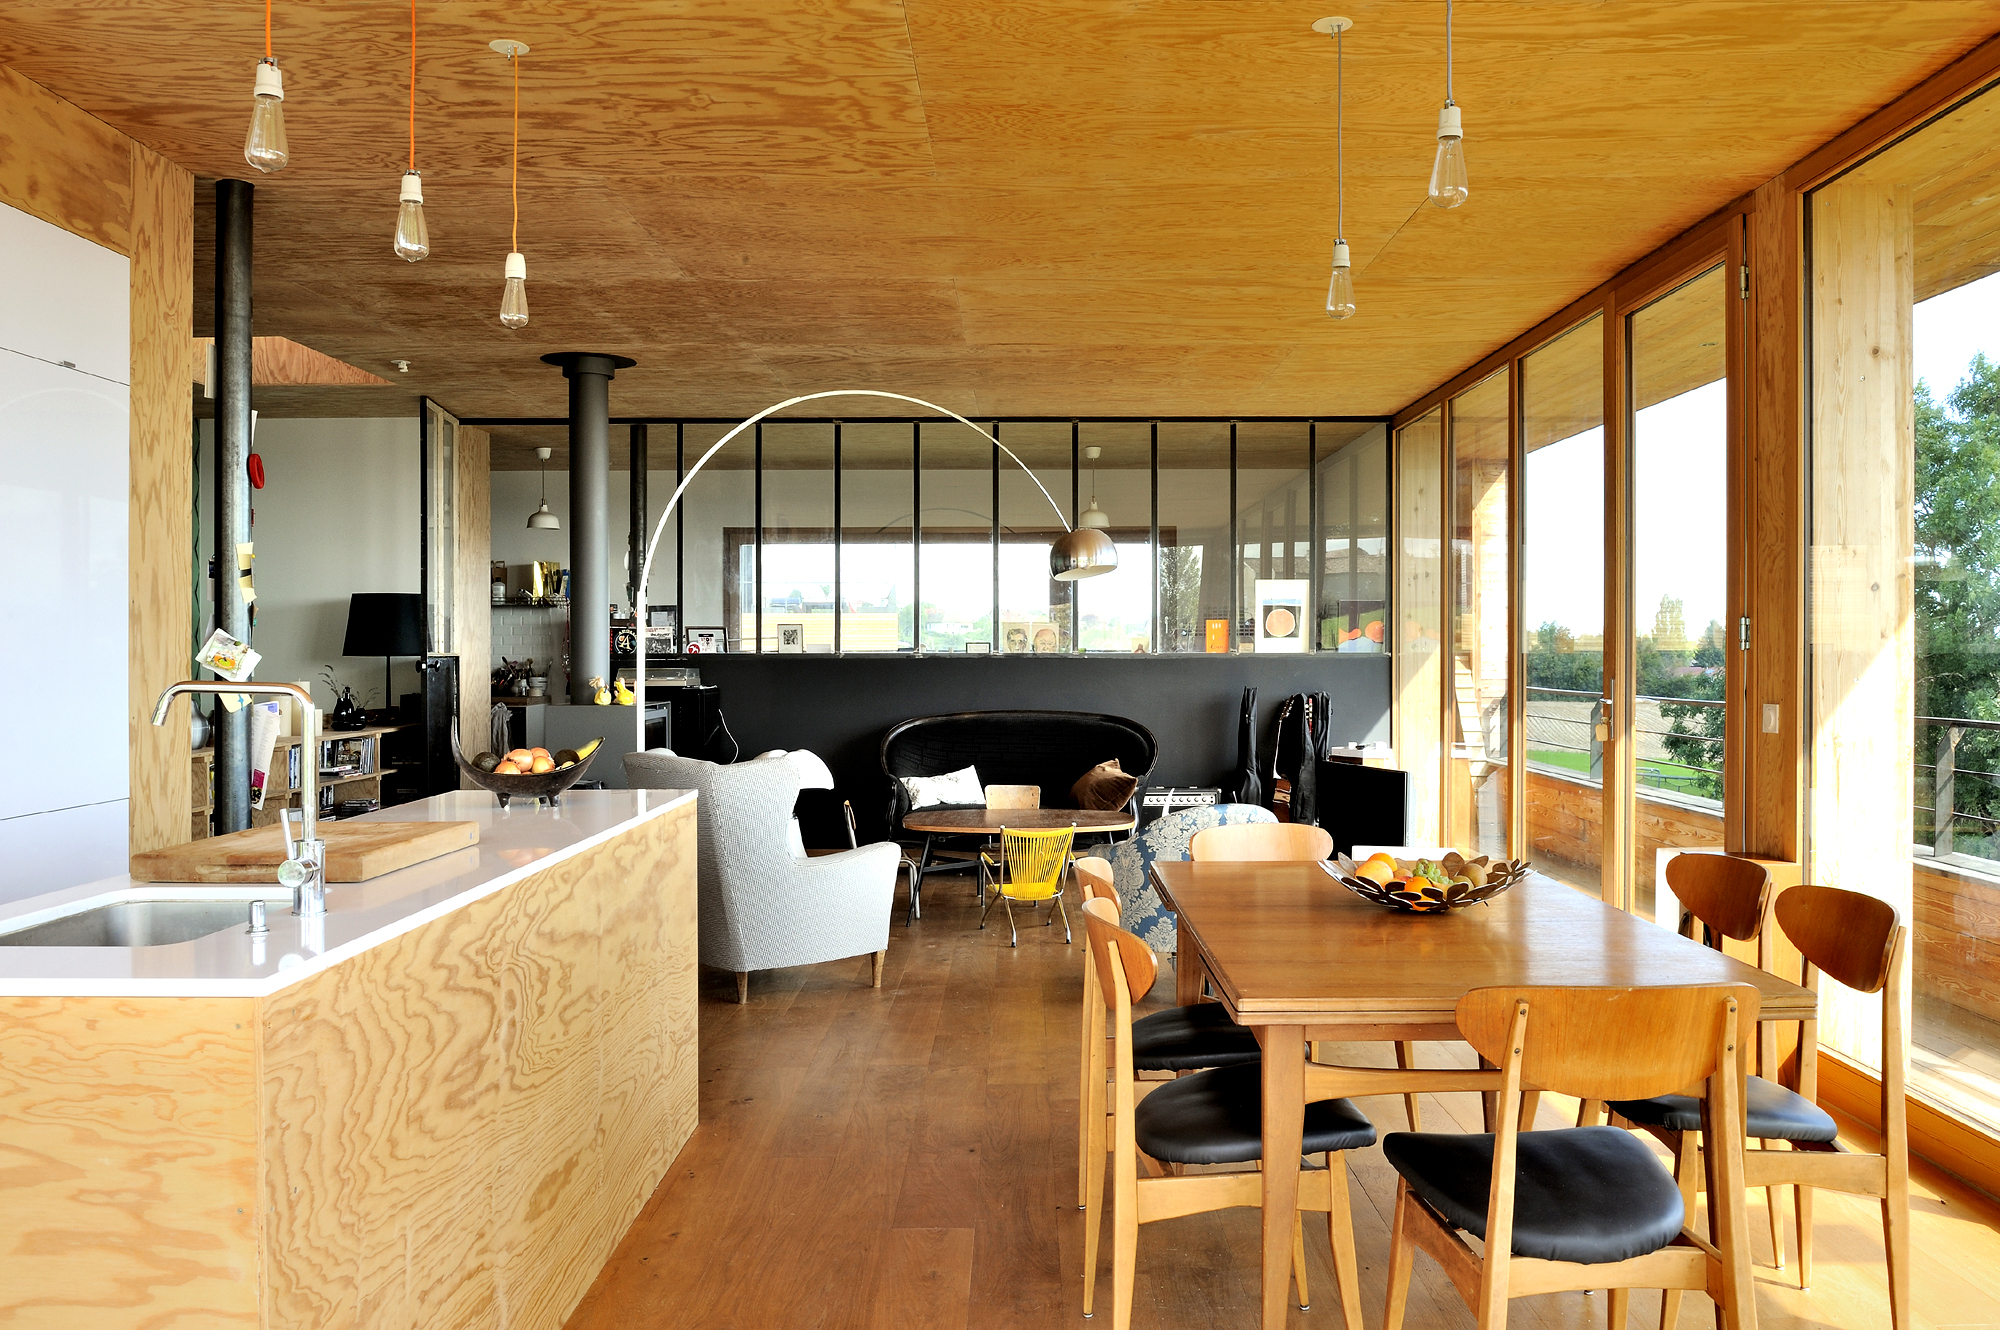 Interieur Maison Contemporaine En Bois